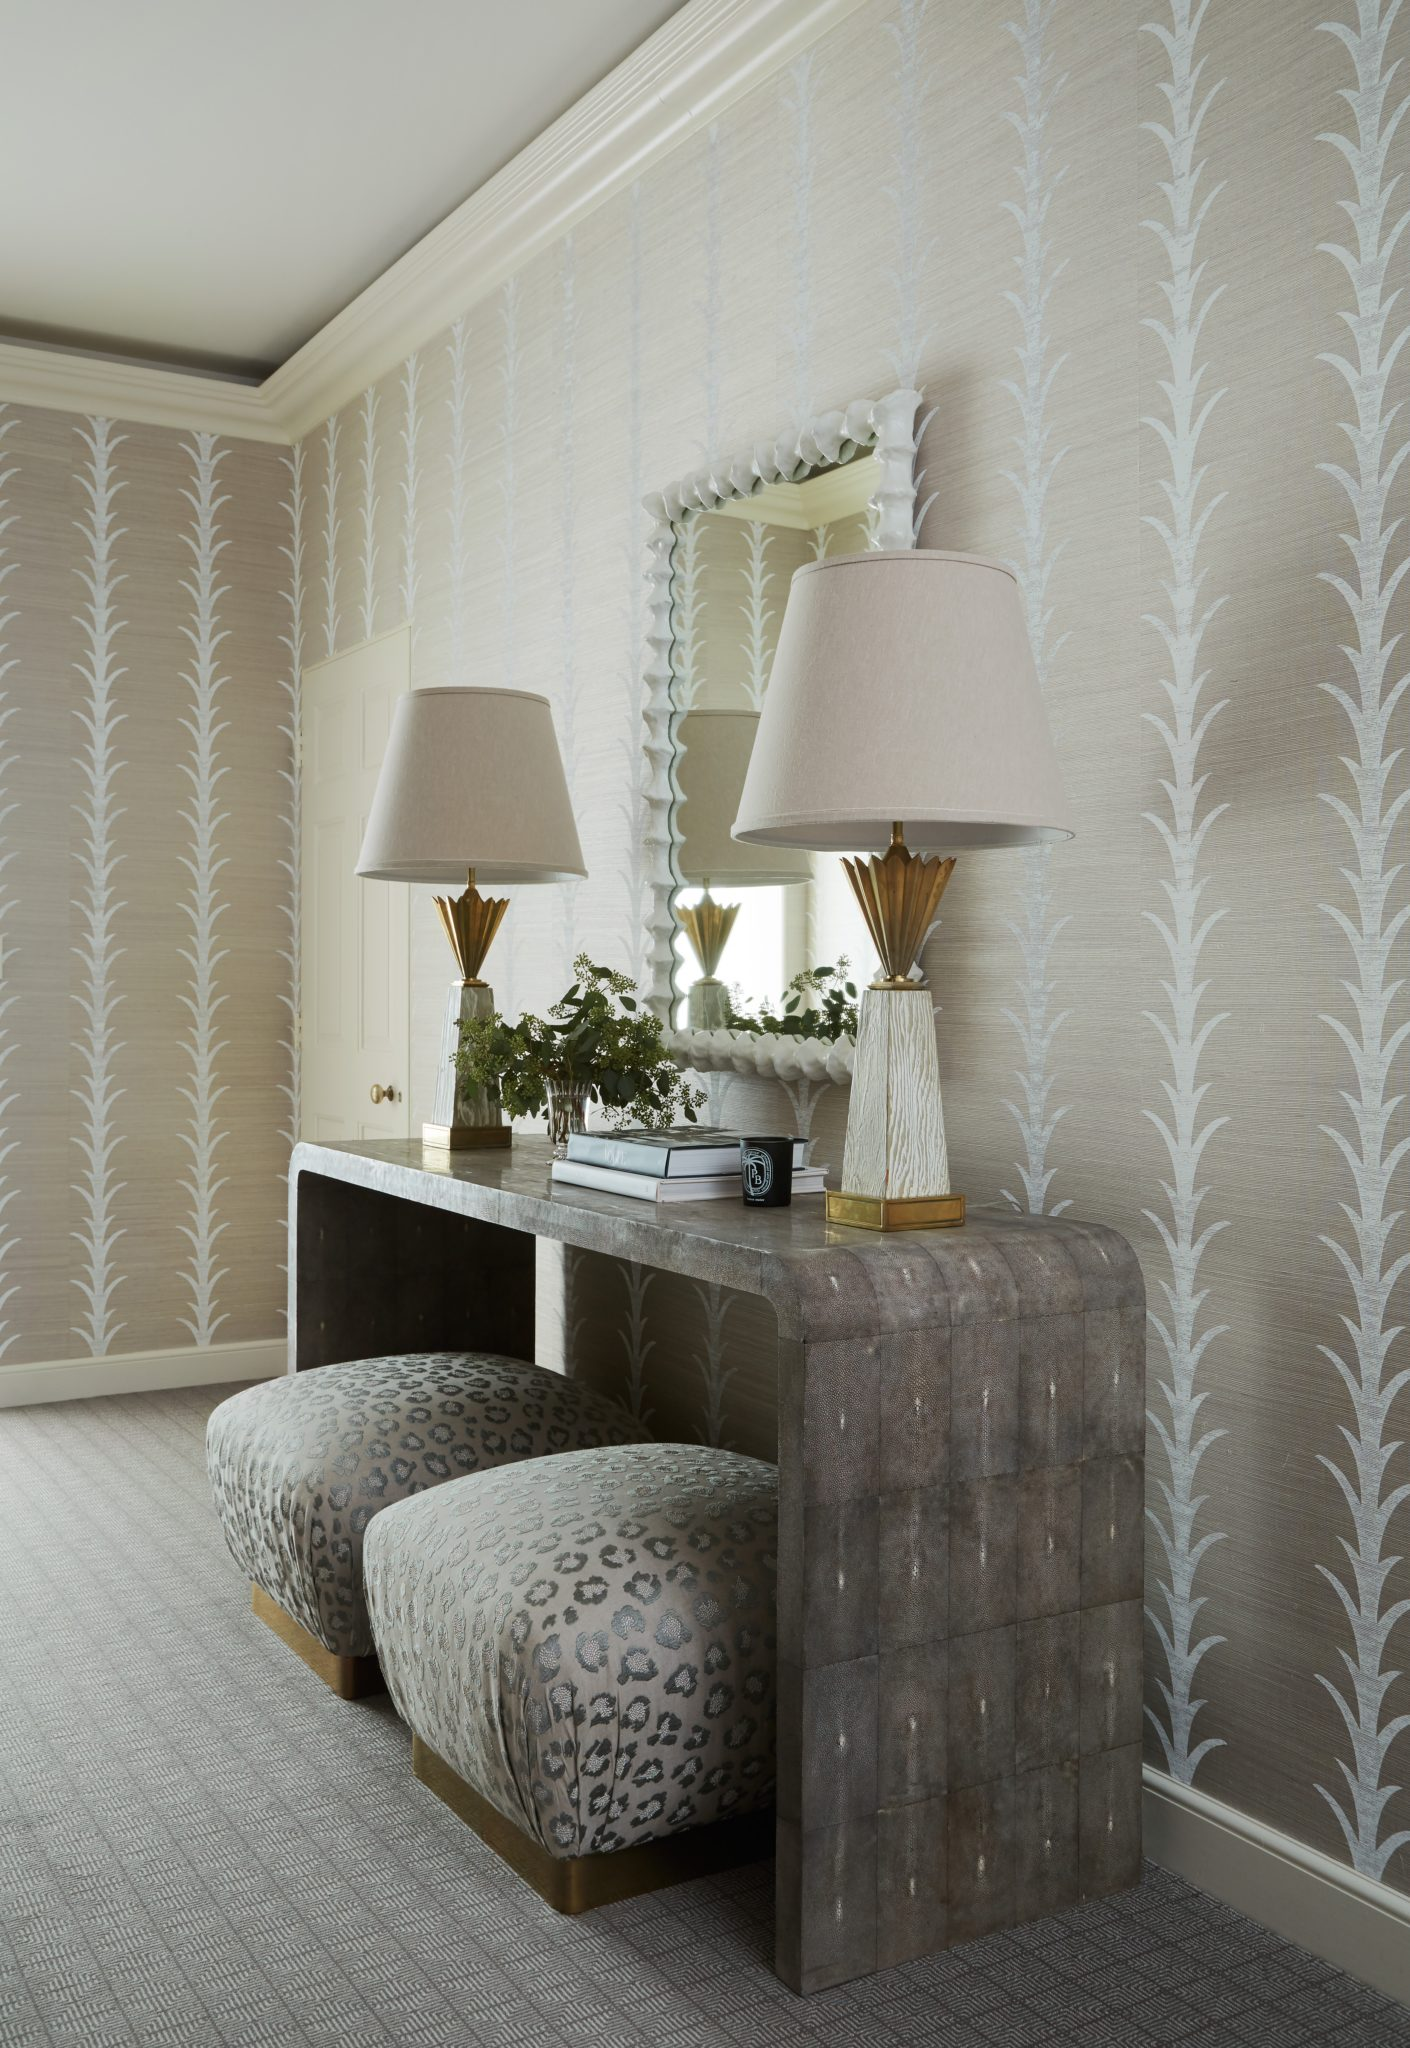 Lake Forest hallway with trellis painted grasscloth wallpaper, snakeskin table and vintage lamps. The brass footed ottomans are upholstered in an embroidered leopard print pattern. By Caitlin Moran Interiors